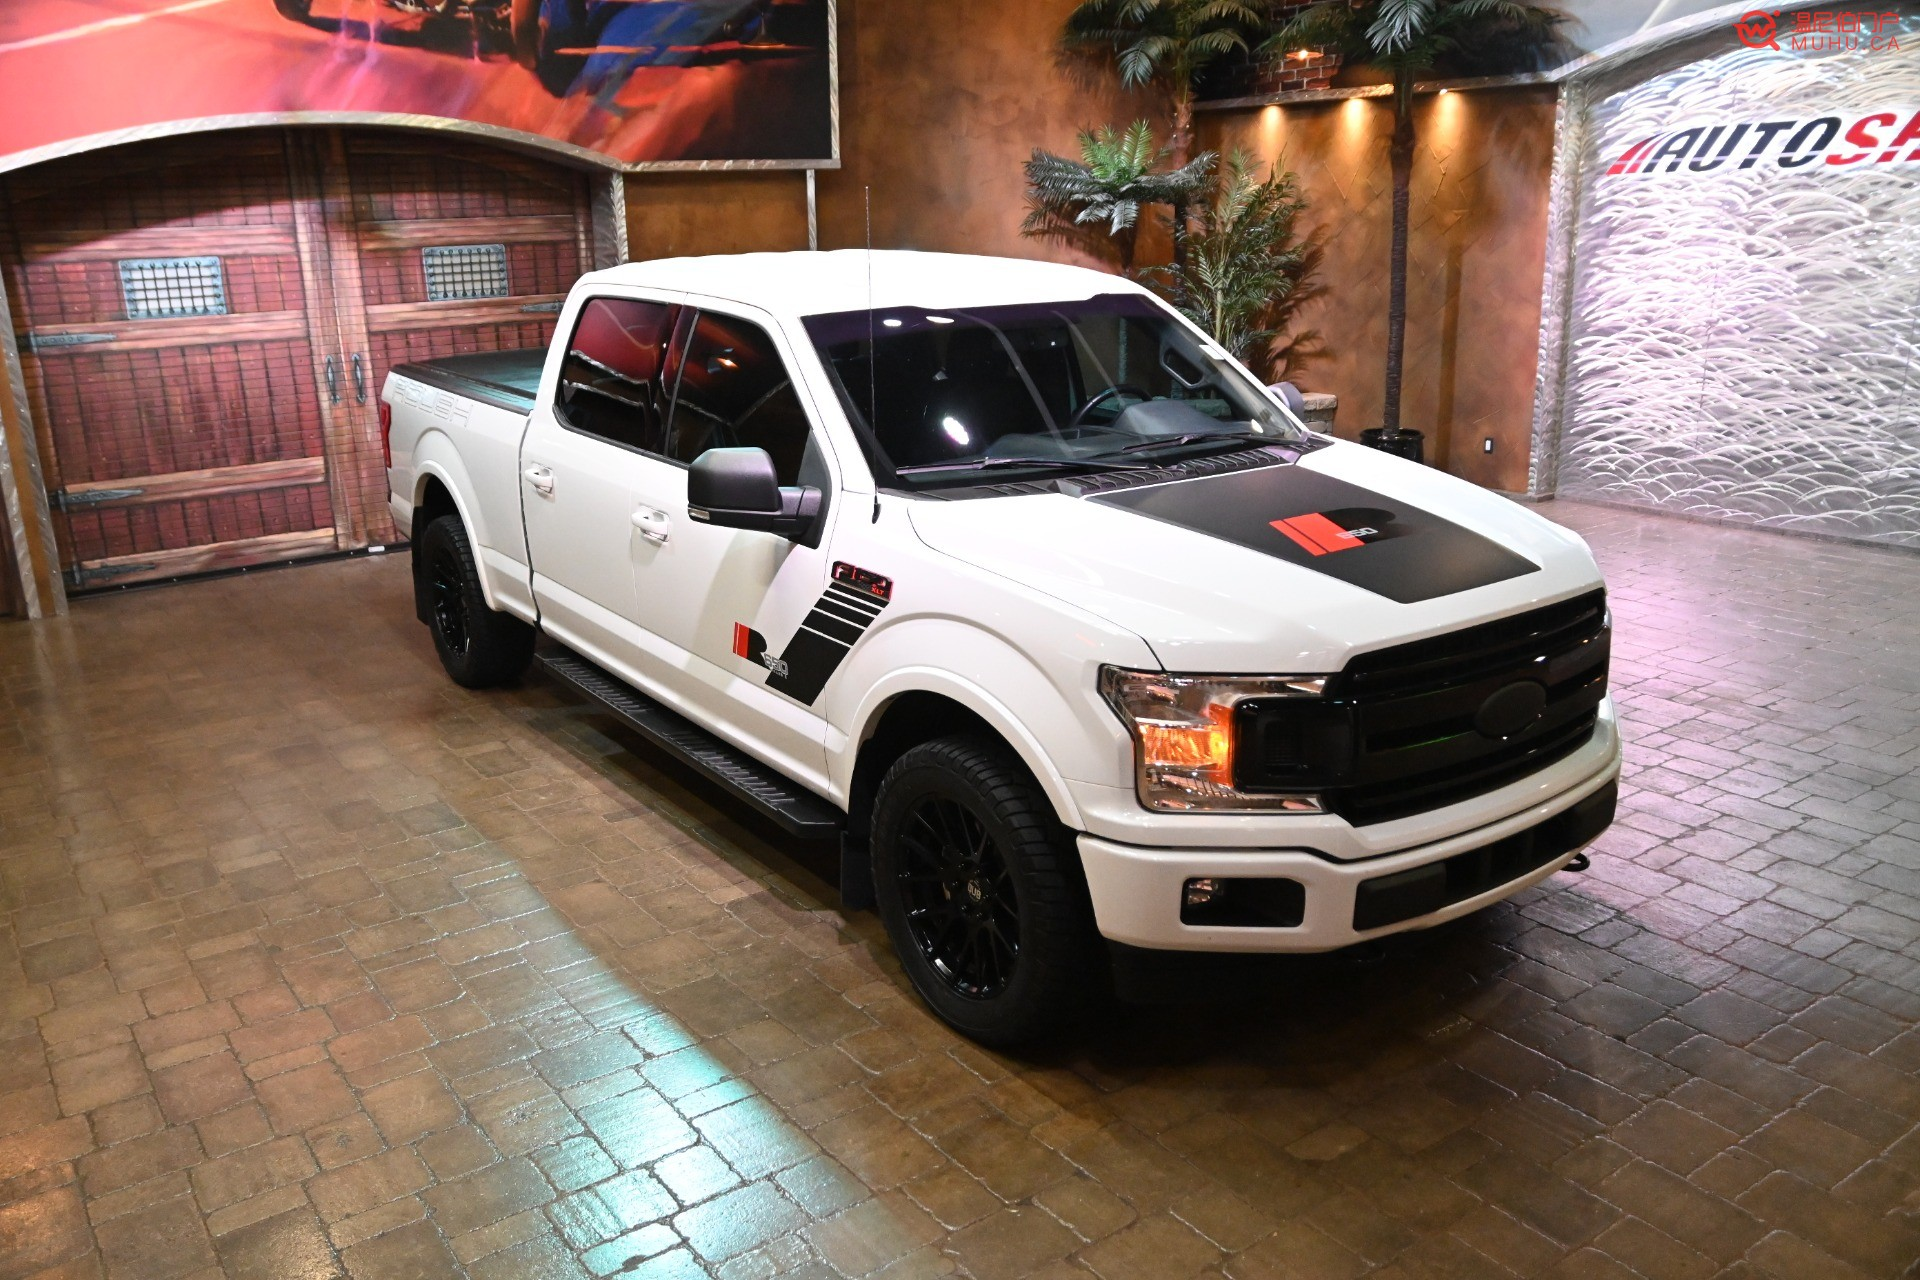 Used-2018-Ford-F-150-ROUSH-SUPERCHARGED-MONSTER-!! (2).jpg